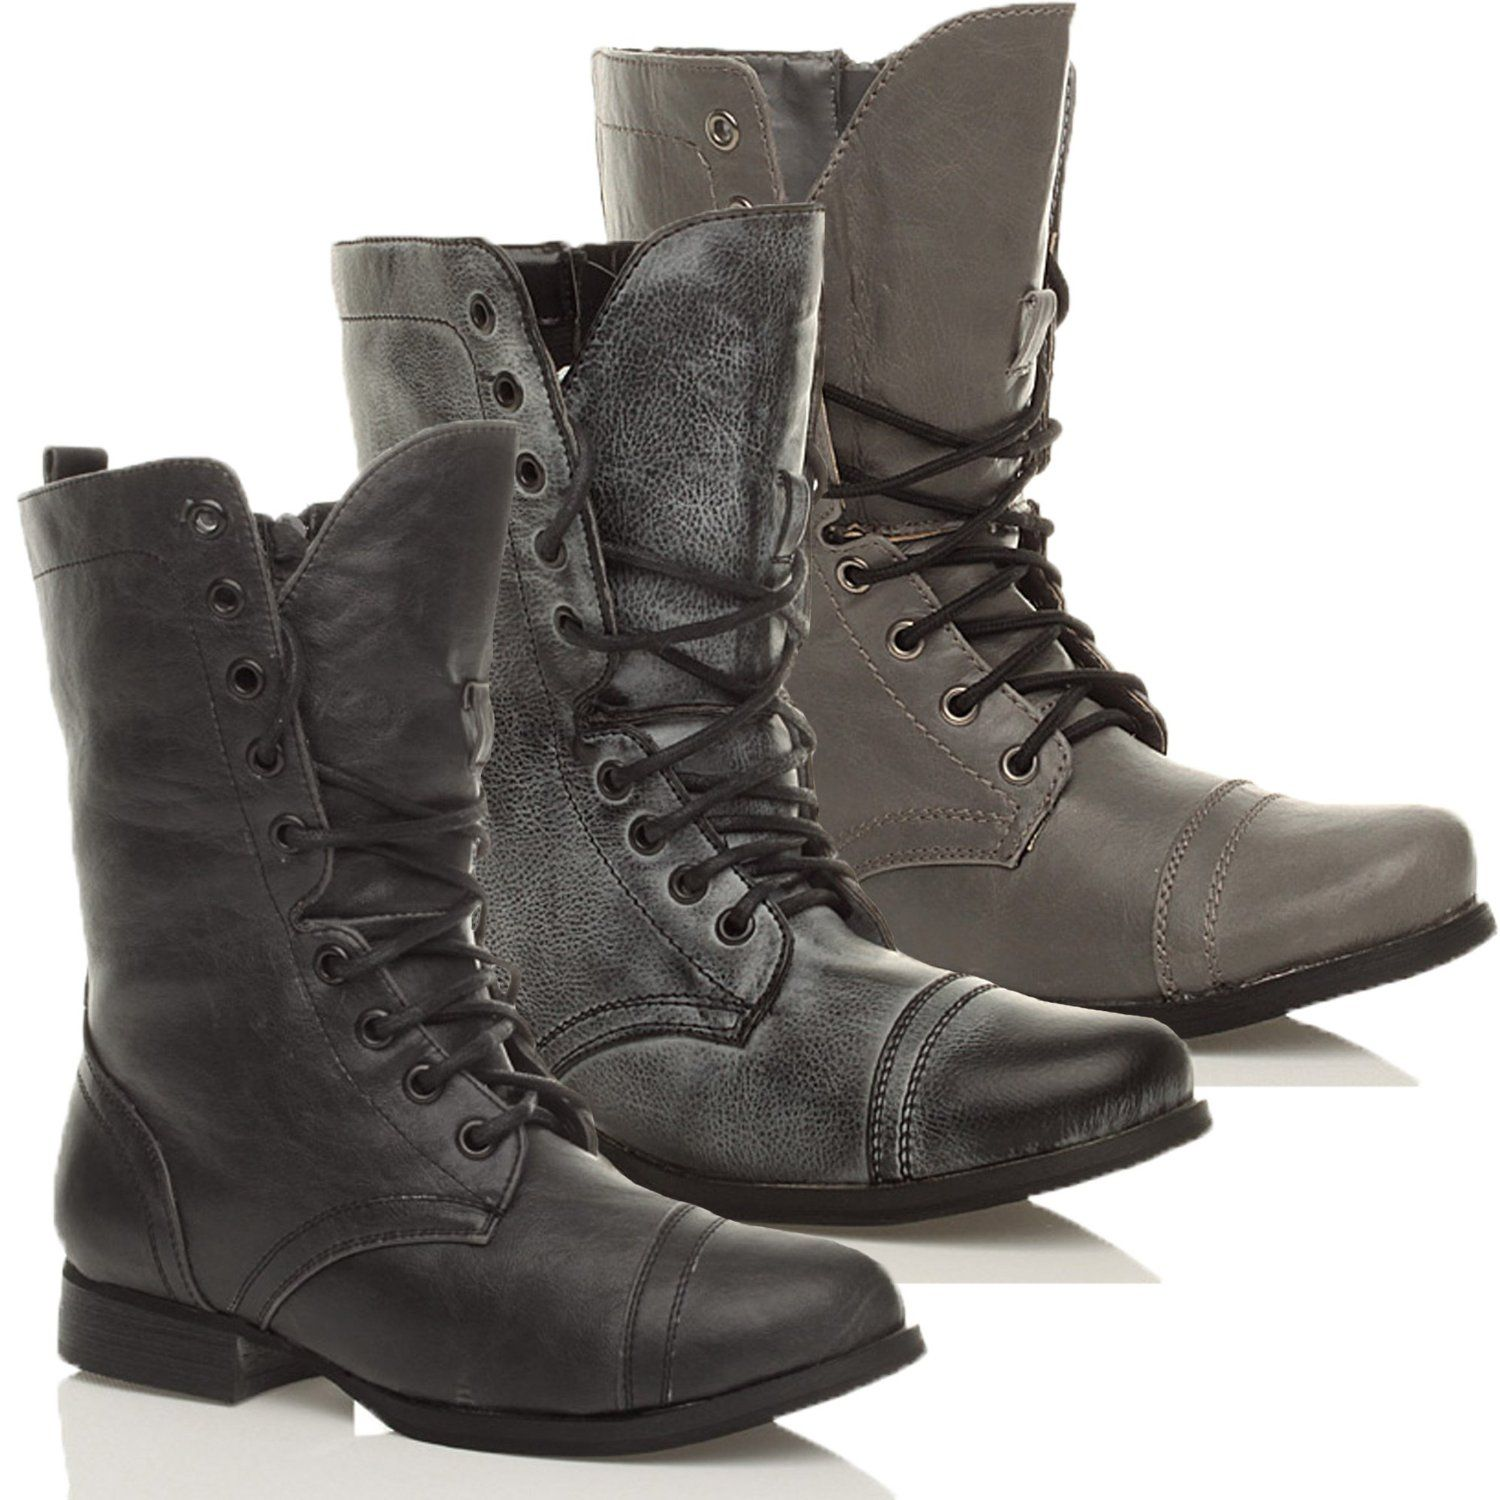 12c4c00d196 WOMENS LADIES MILITARY LACE UP ZIP ARMY FLAT LOW HEEL COMBAT ANKLE BOOTS  SIZE  Amazon.co.uk  Shoes   Bags